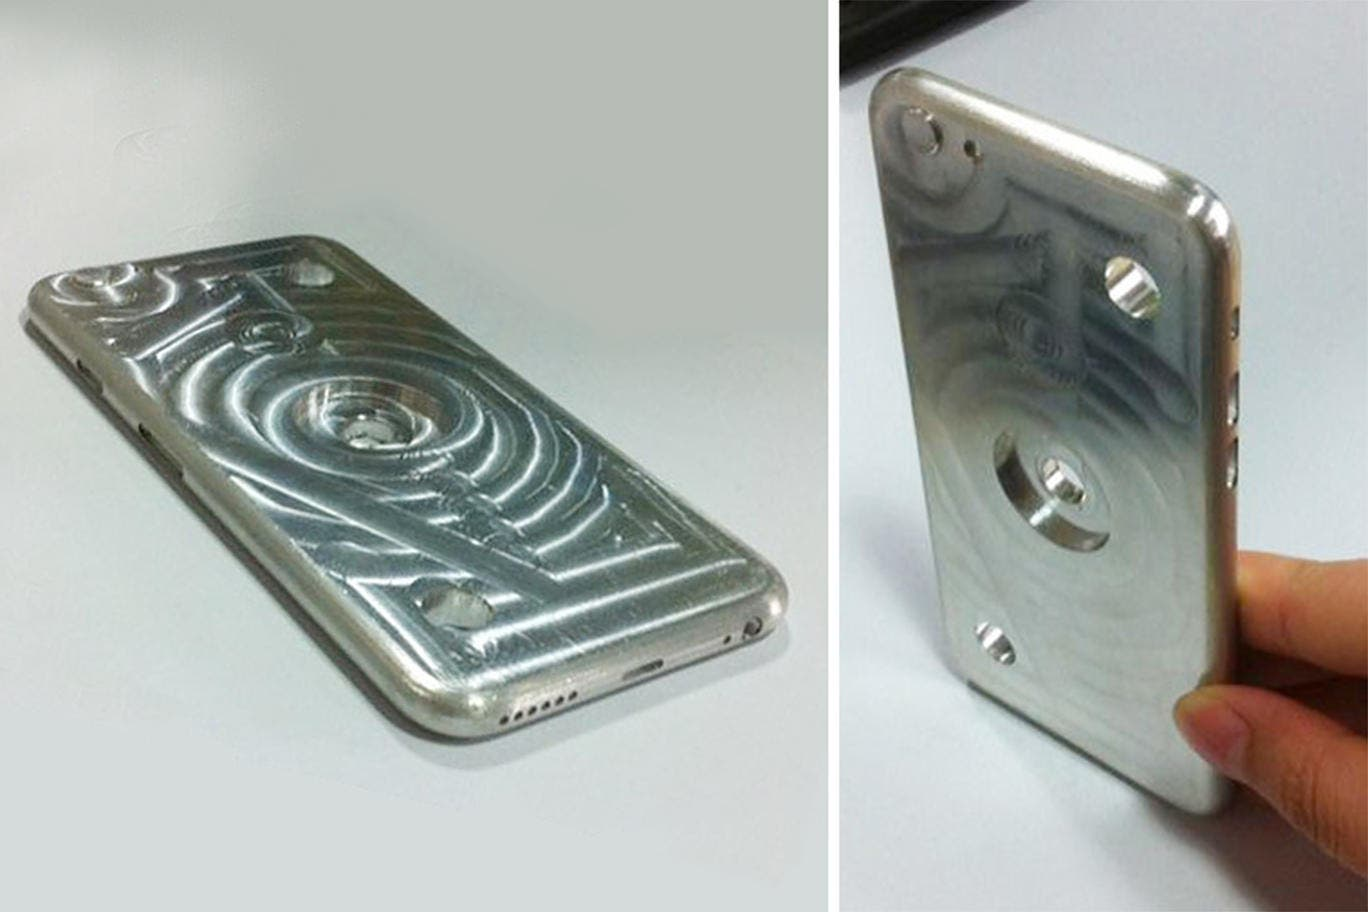 iPhone 6 Hüllen-Gussform aus Aluminium in Rumänien gesichtet